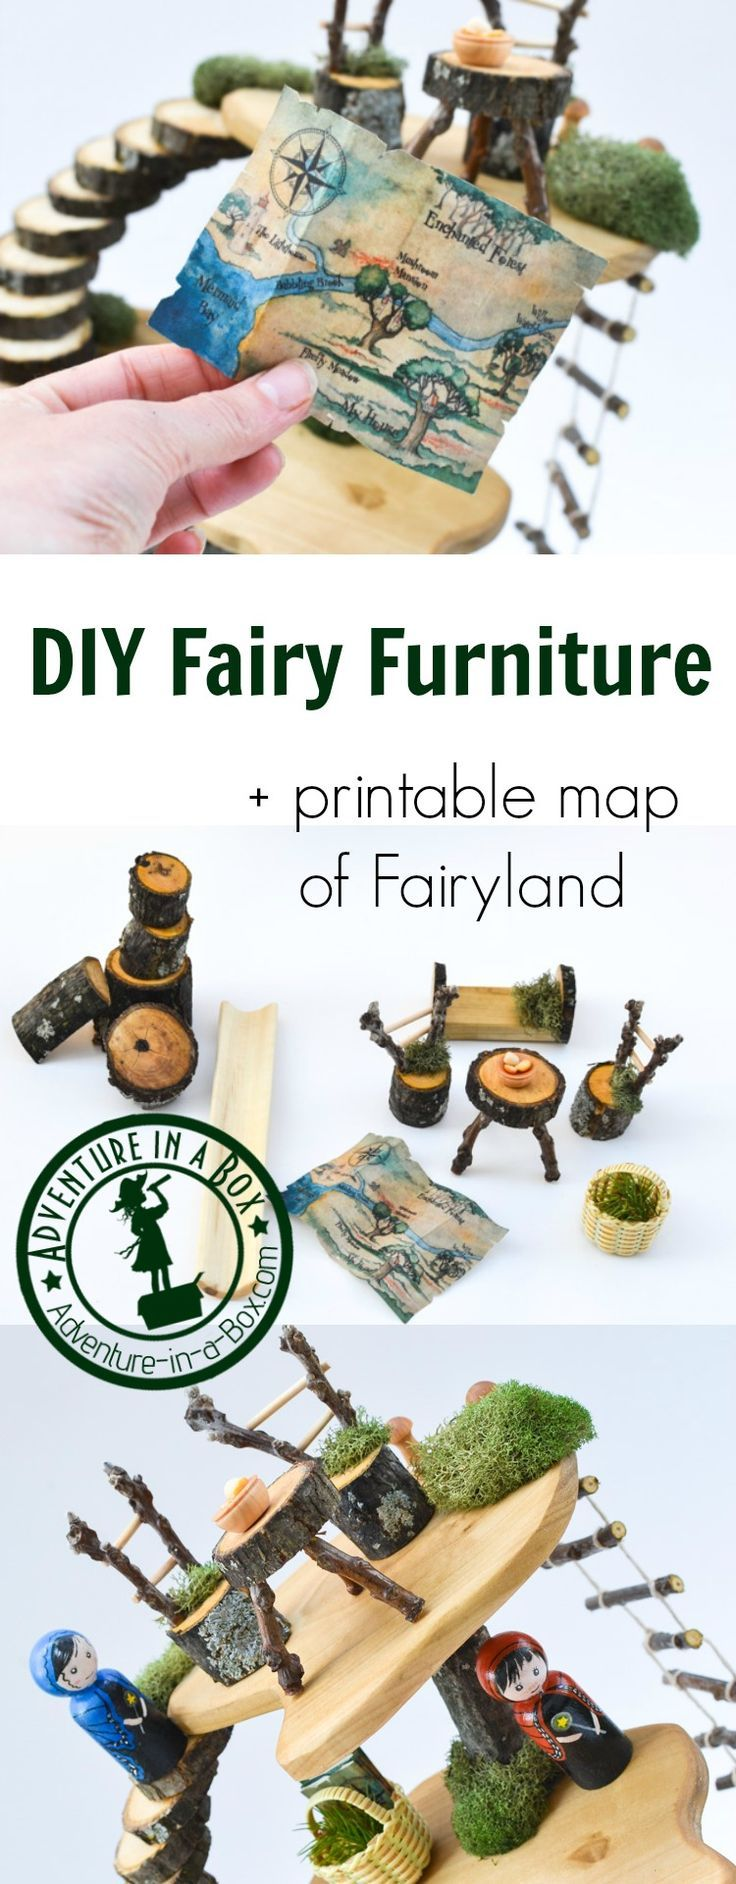 If you have a fairy house, make fairy dollhouse furniture! Built from natural materials and with simple tools, it's a fun project for older kids and adults. A printable map of Fairyland is included!